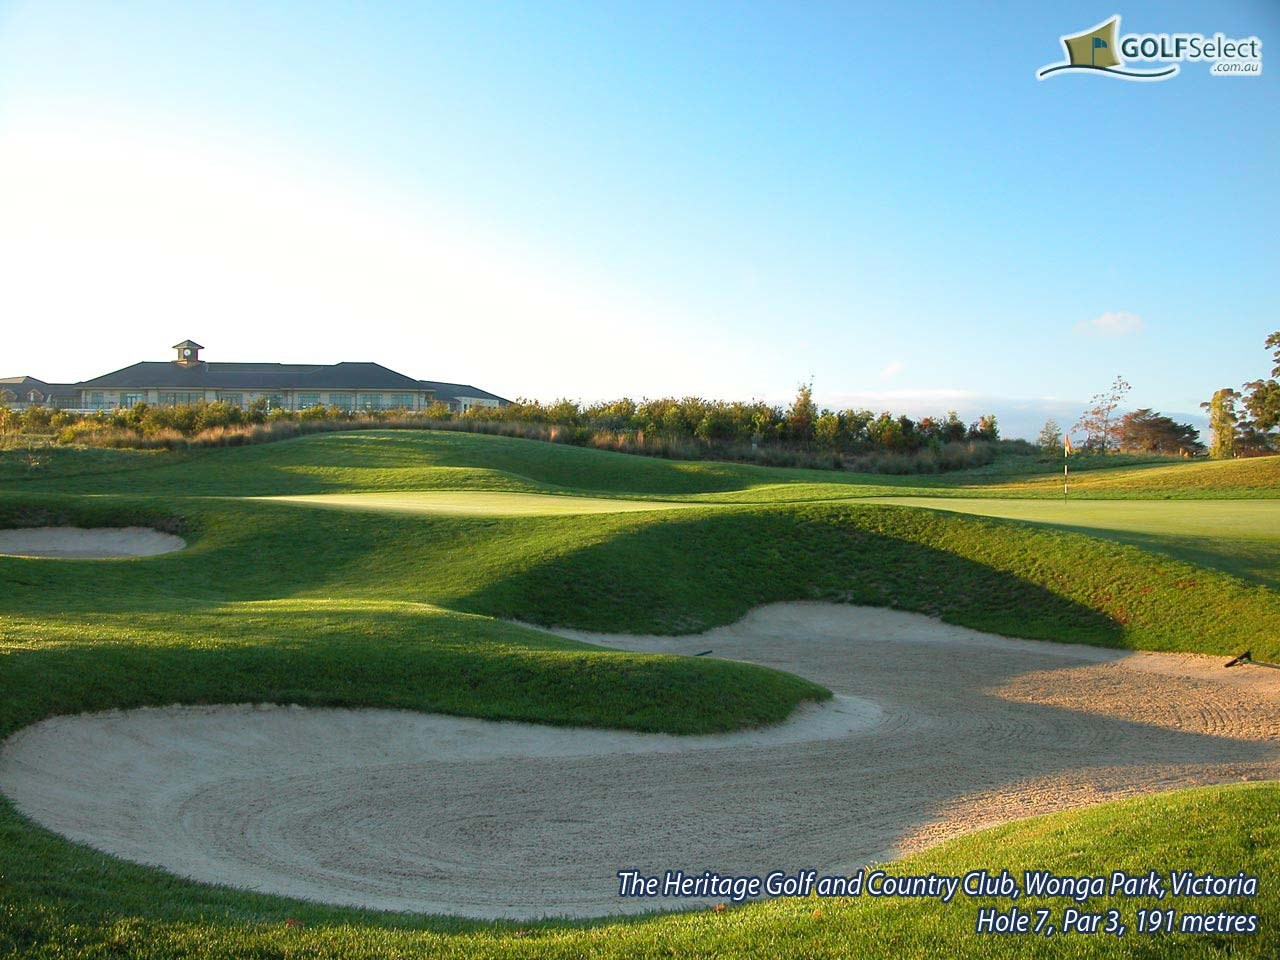 The Heritage Golf and Country Club (St.John Course) Hole 7, Par 3, 191 metres